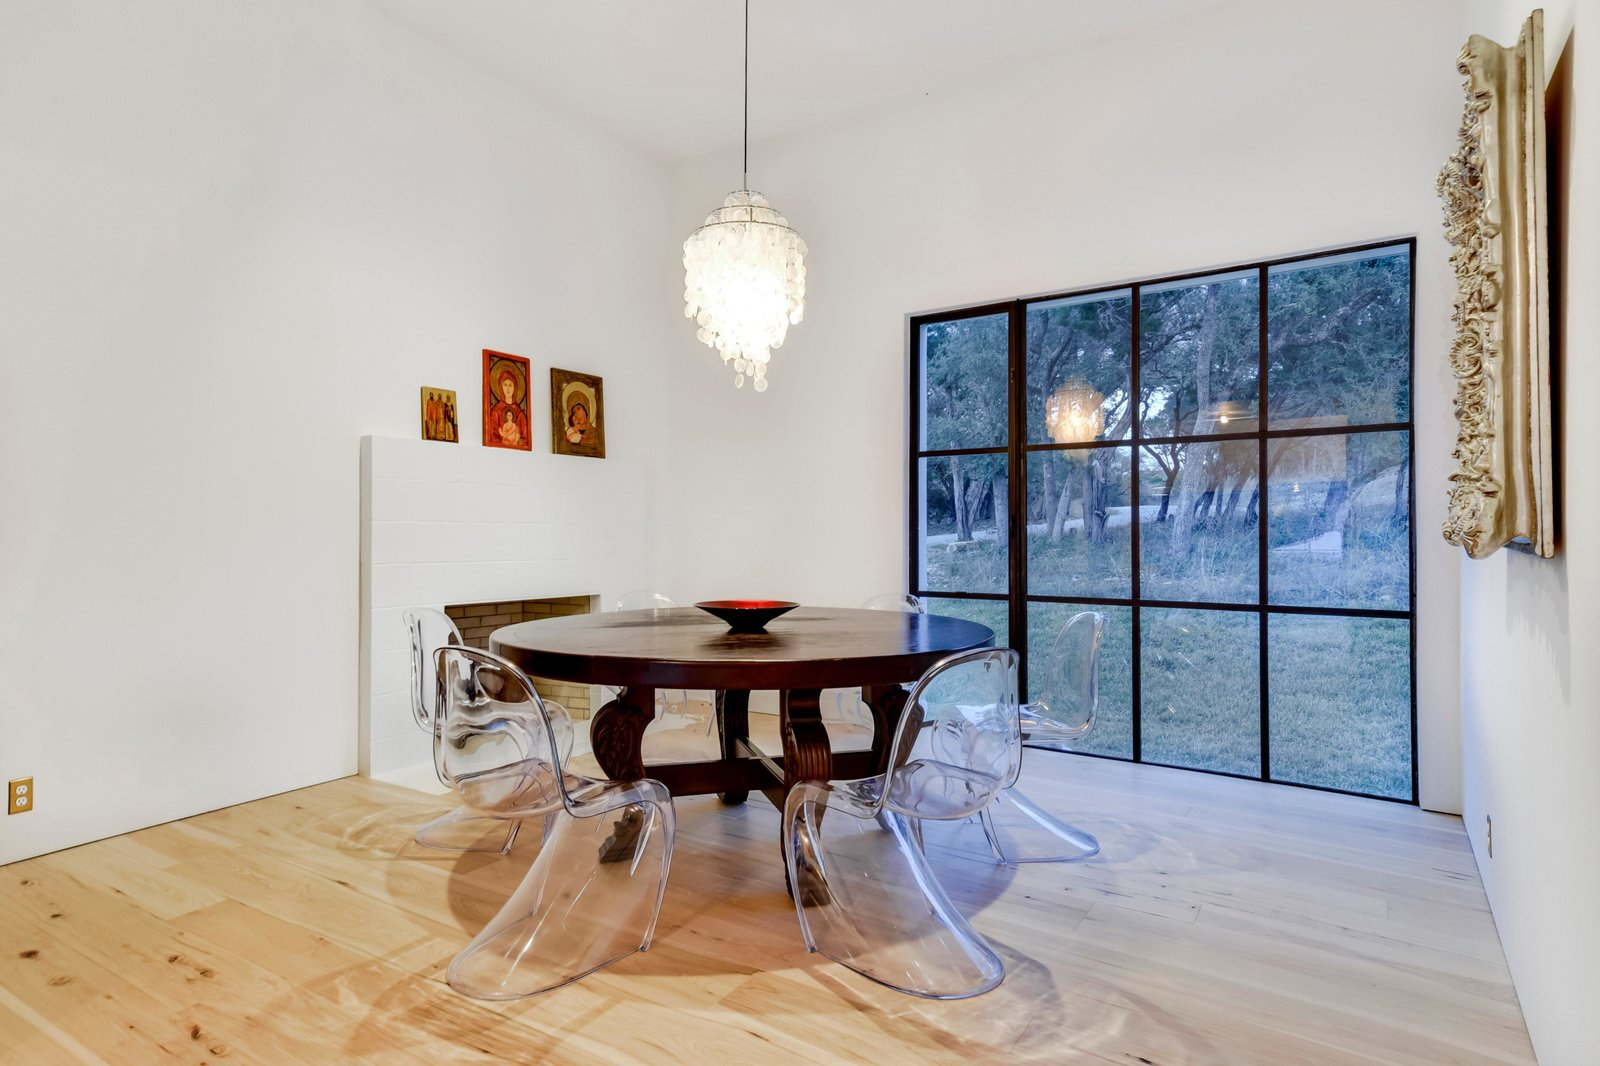 Dining Room, Table, Medium Hardwood Floor, Chair, Pendant Lighting, and Standard Layout Fireplace The dining area overlooks the yard.  Photo 7 of 22 in Own This Alluring Sculptural Abode in Austin For $3.1M